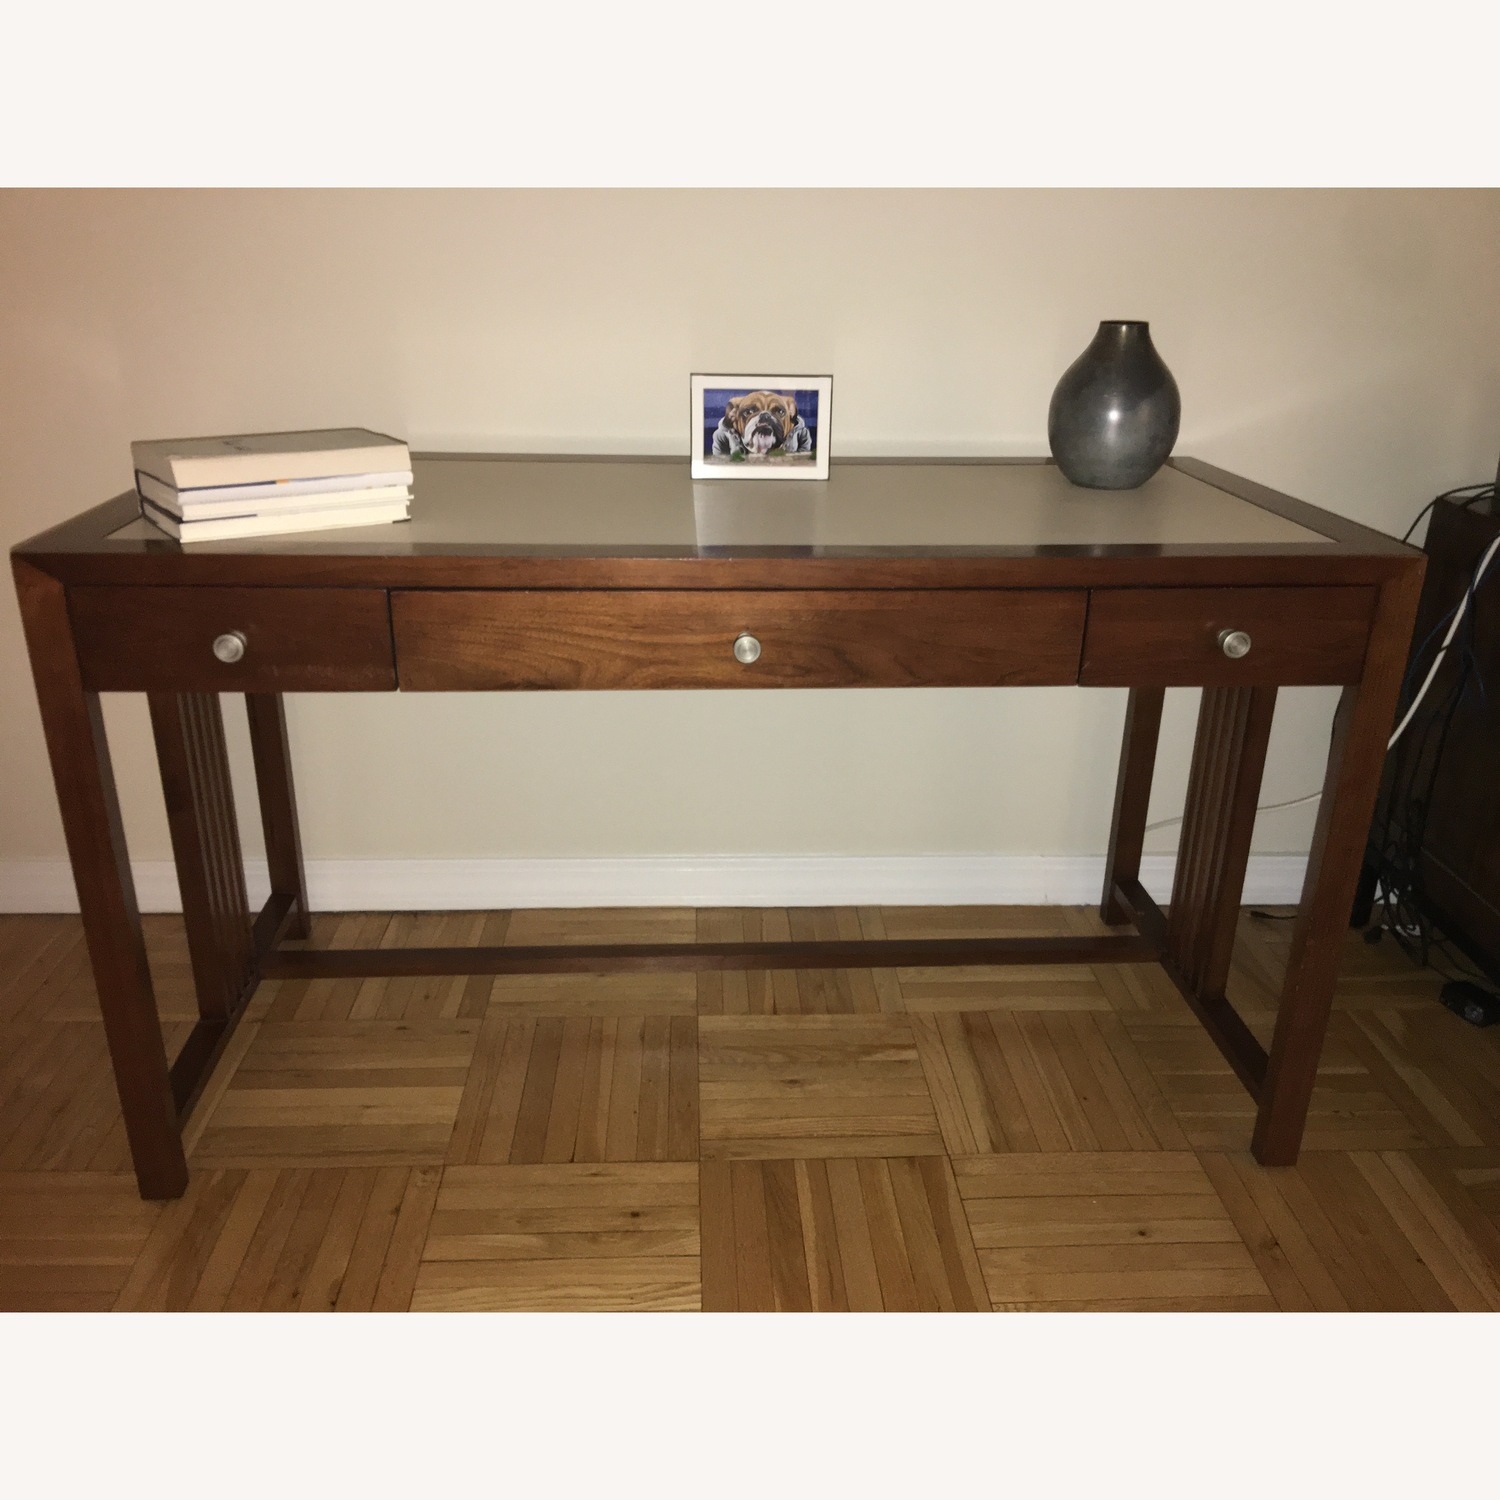 Crate & Barrel Adler Desk - image-1